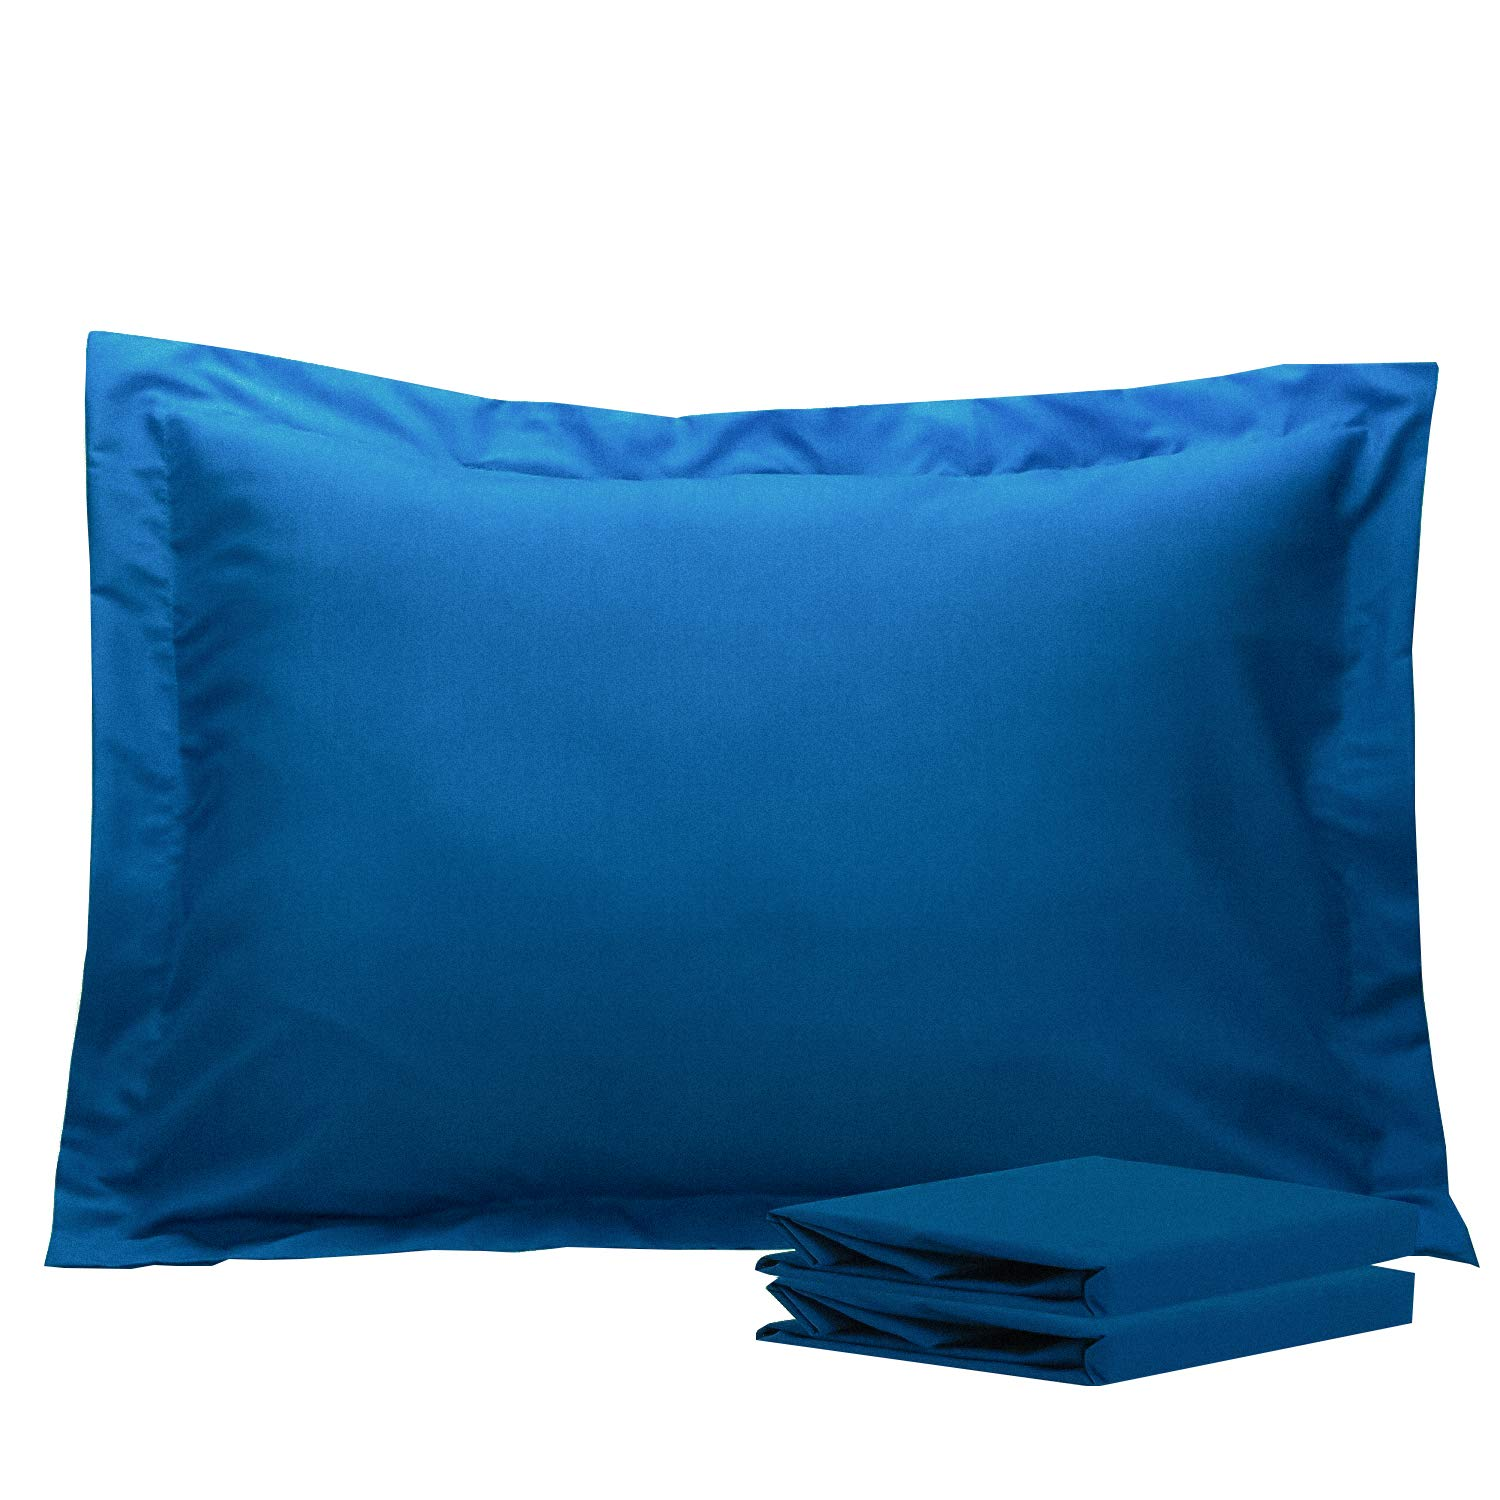 NTBAY Standard Pillow Shams, Set of 2, 100% Brushed Microfiber, Soft and Cozy, Wrinkle, Fade, Stain Resistant, Standard, Royal Blue